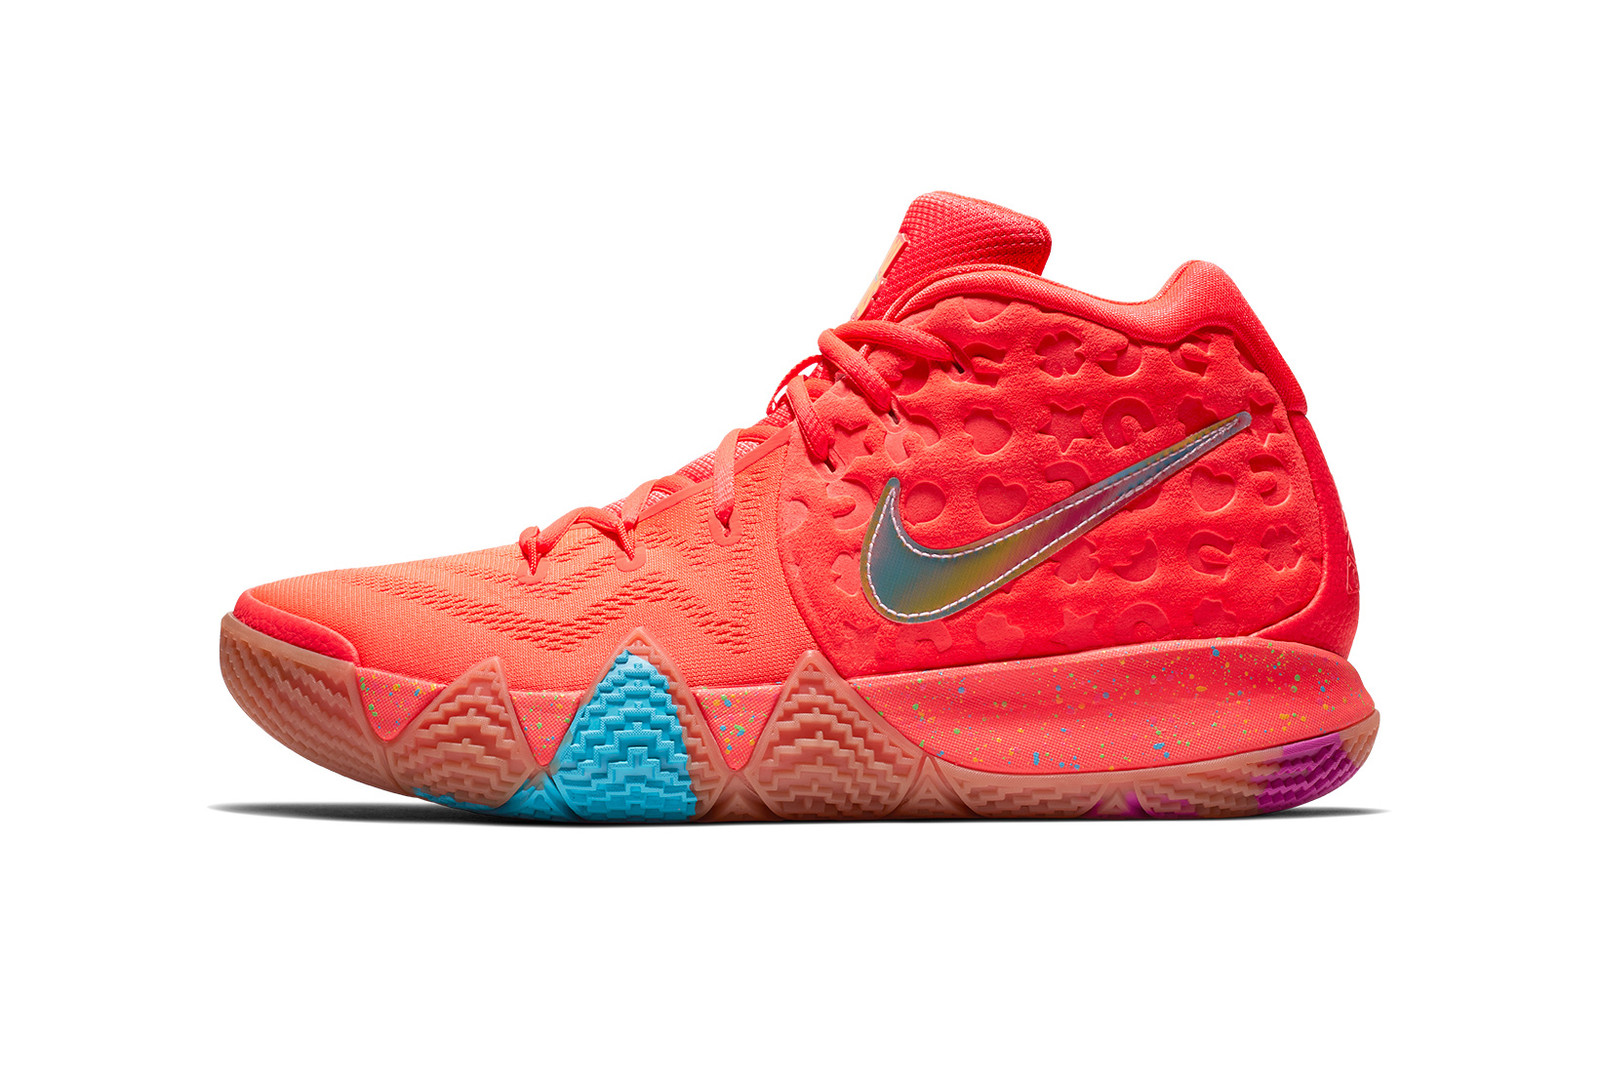 """check out 1fde3 1c37b Nike Kyrie 4 """"Cereal"""" Pack"""